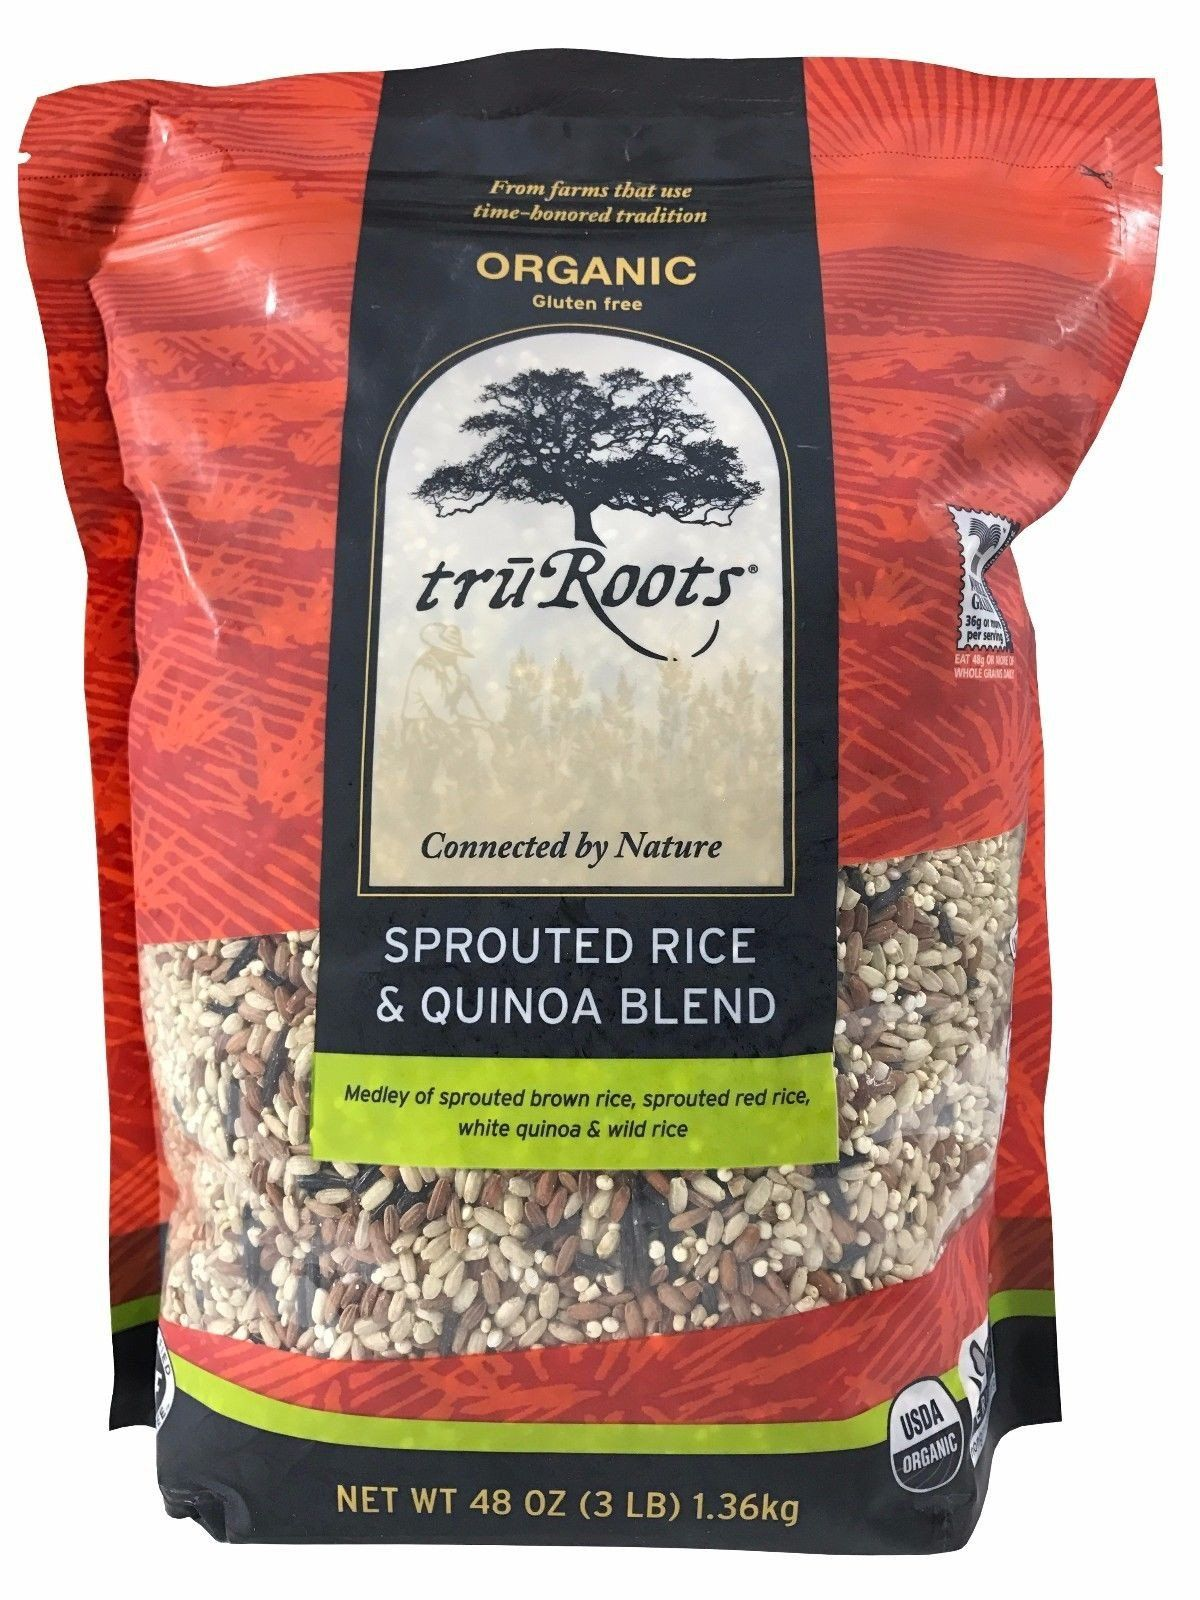 Tru Roots Organic Sprouted Rice & Quinoa Blend with Wild